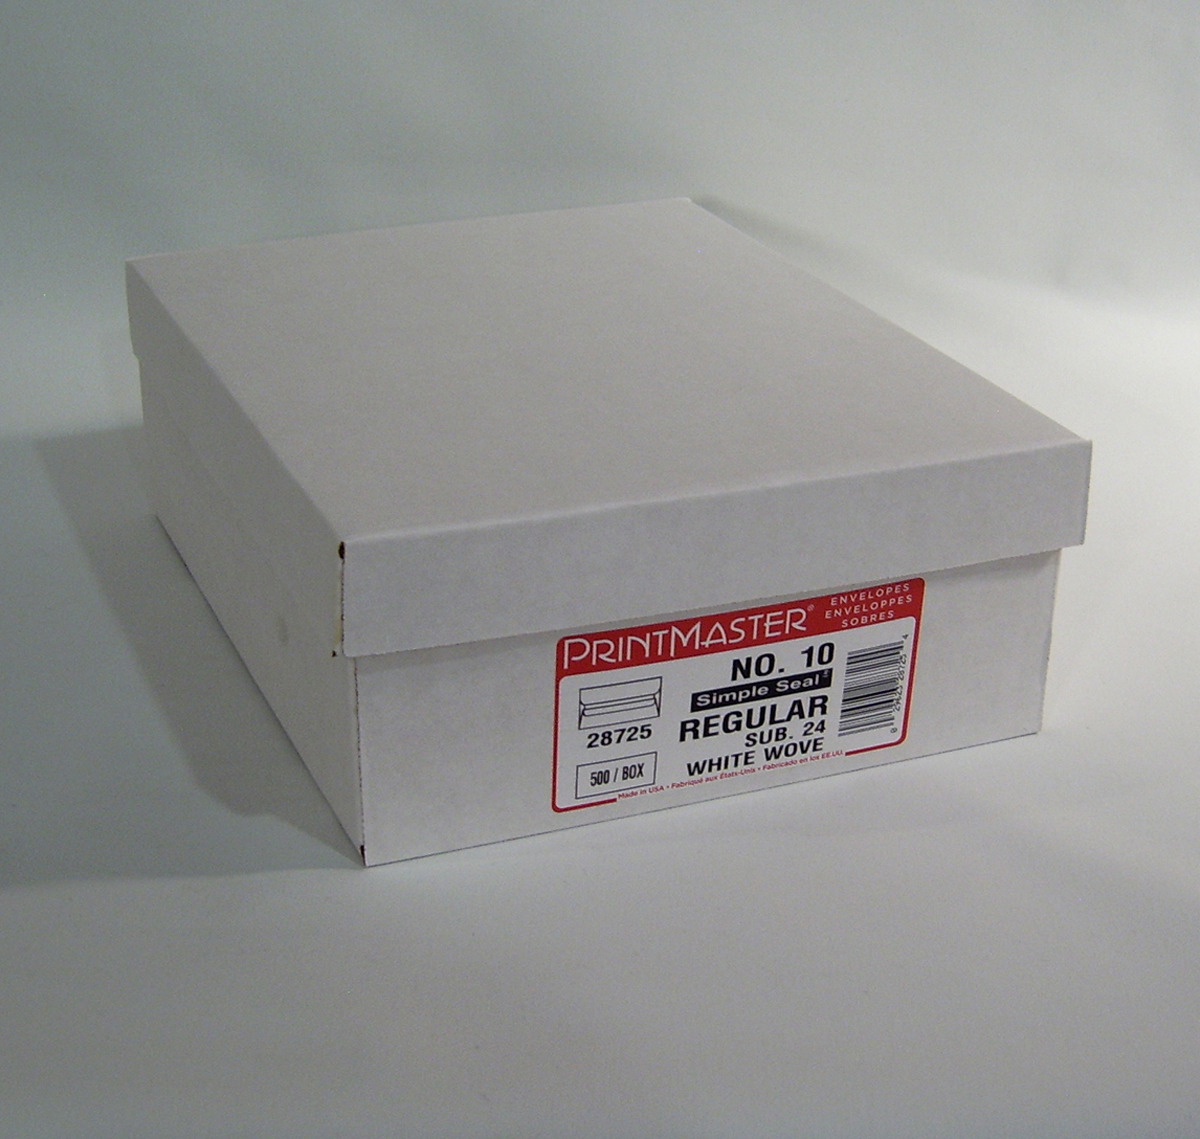 #10 Regular Simple seal Envelope Box